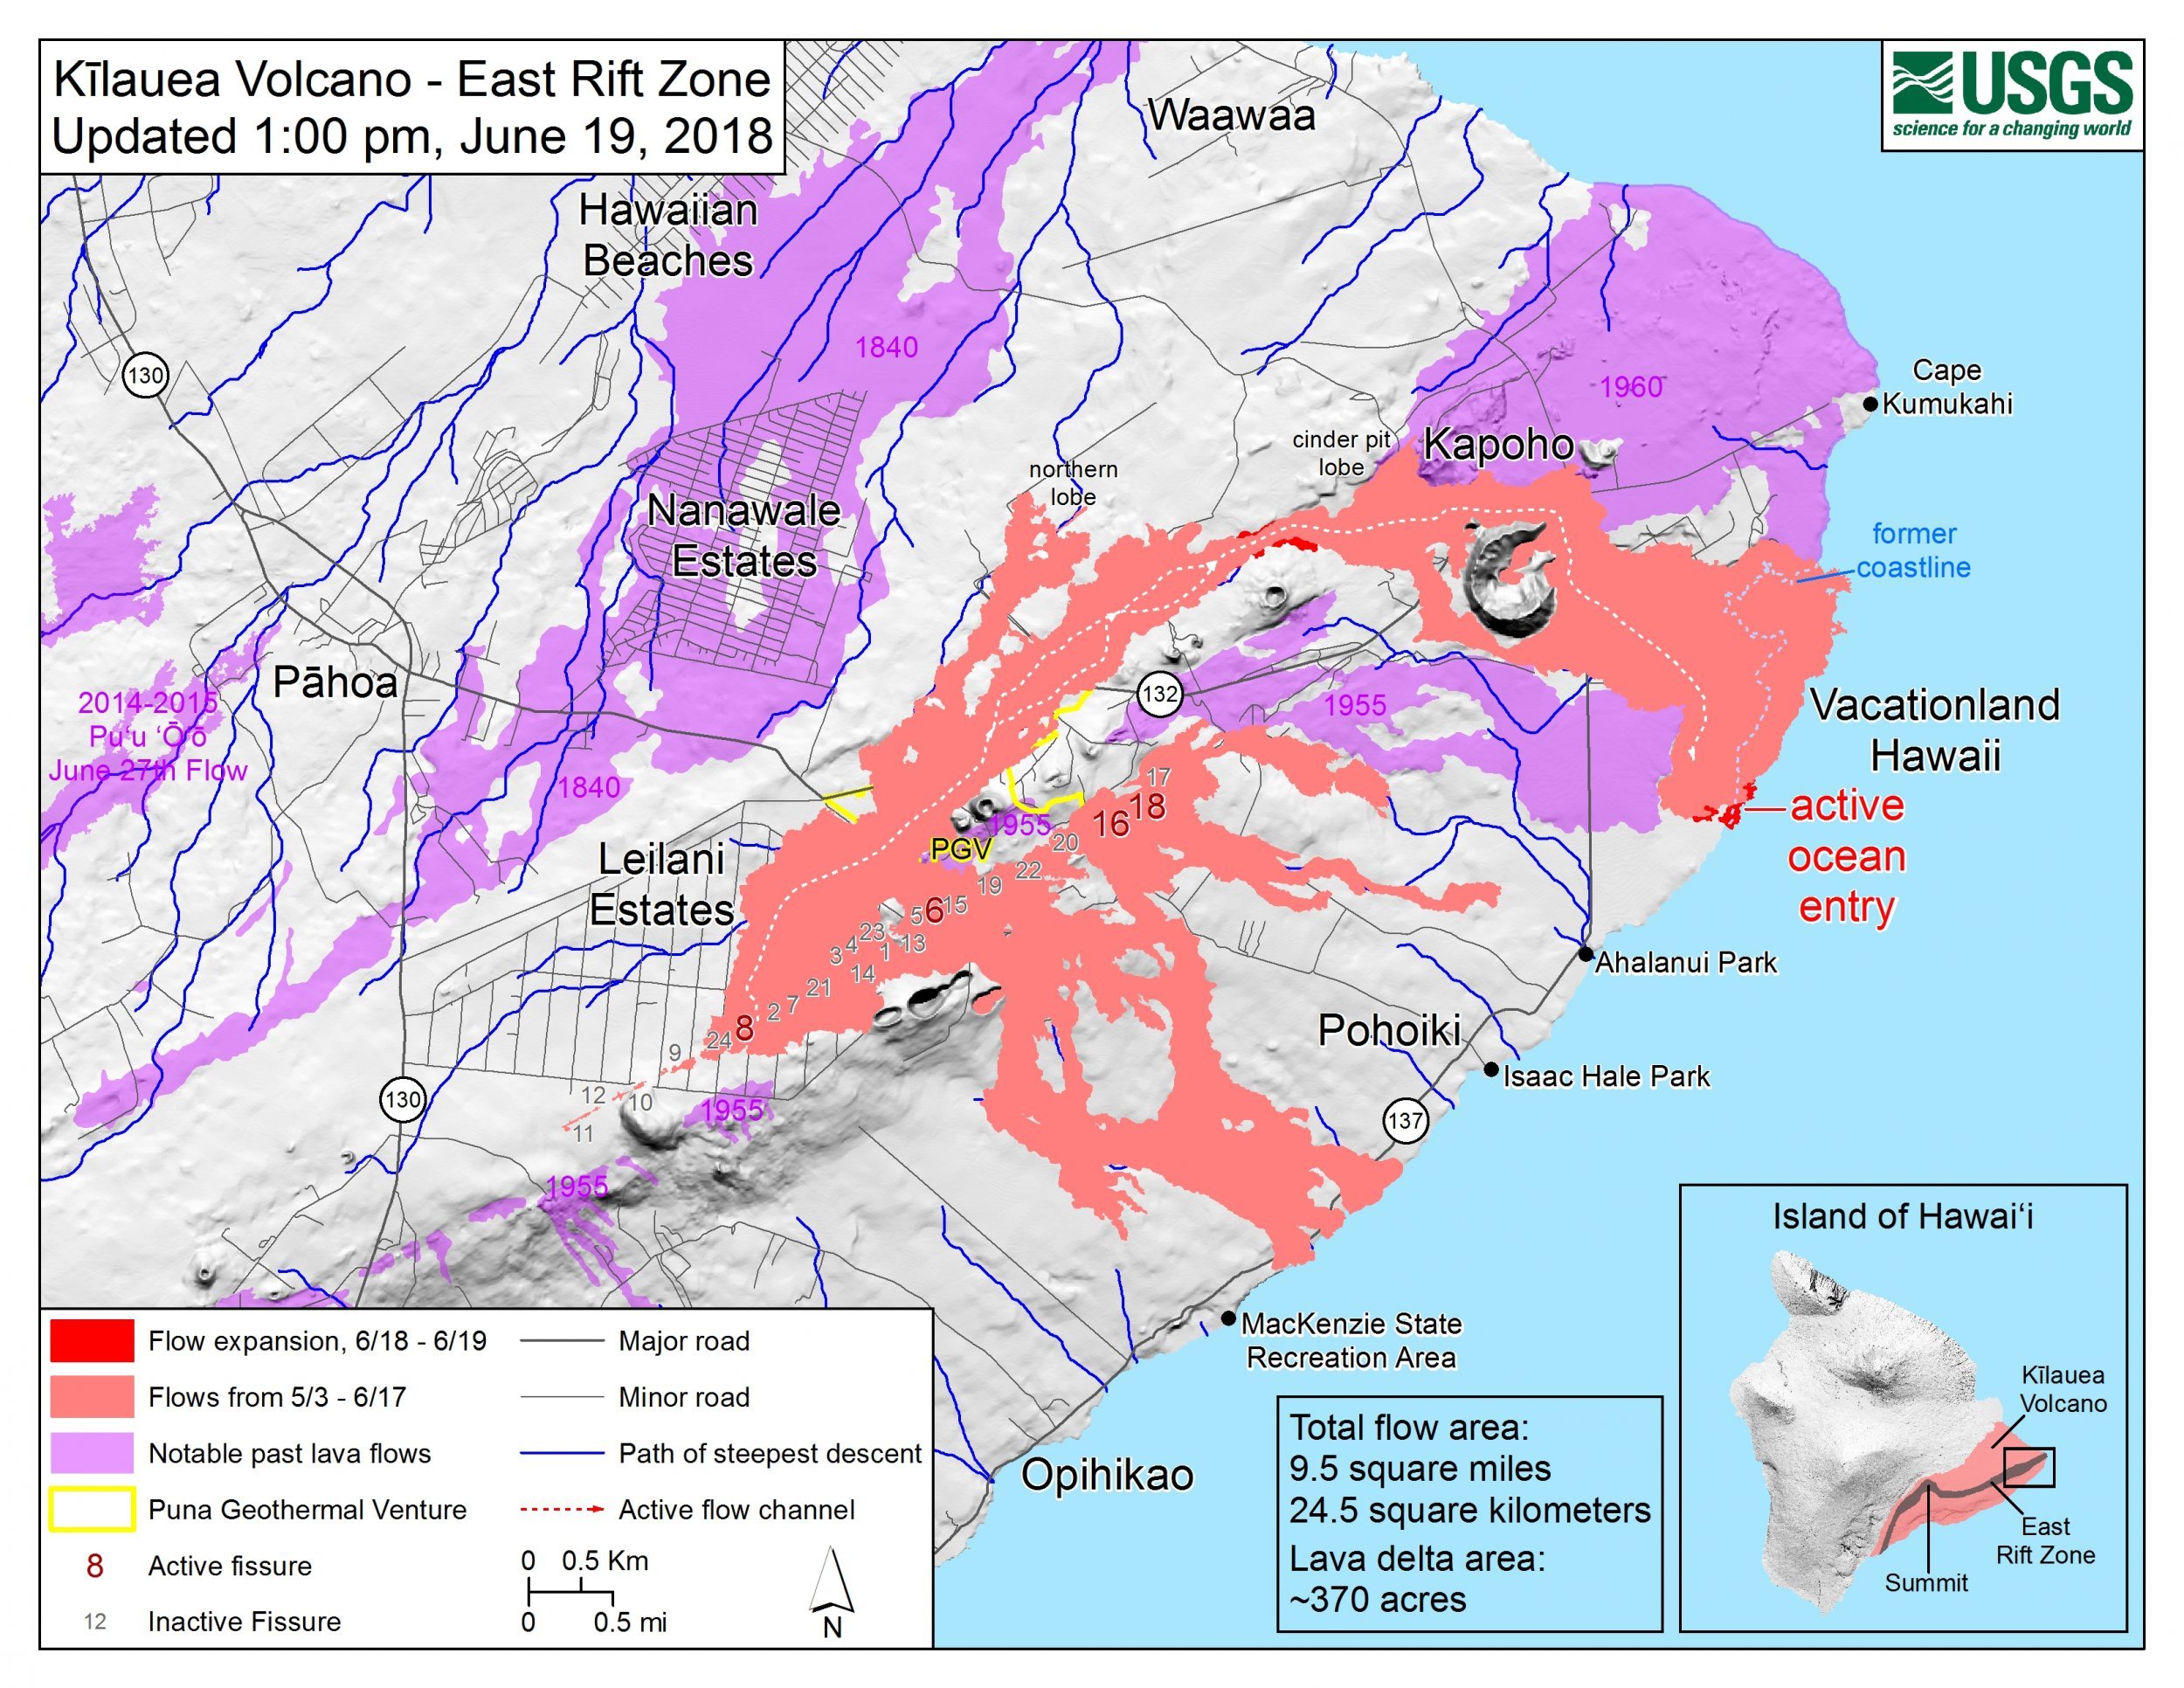 Hawaii Kilauea Volcano Update Usgs Map New Fissures Earthquake Overnight Explosion